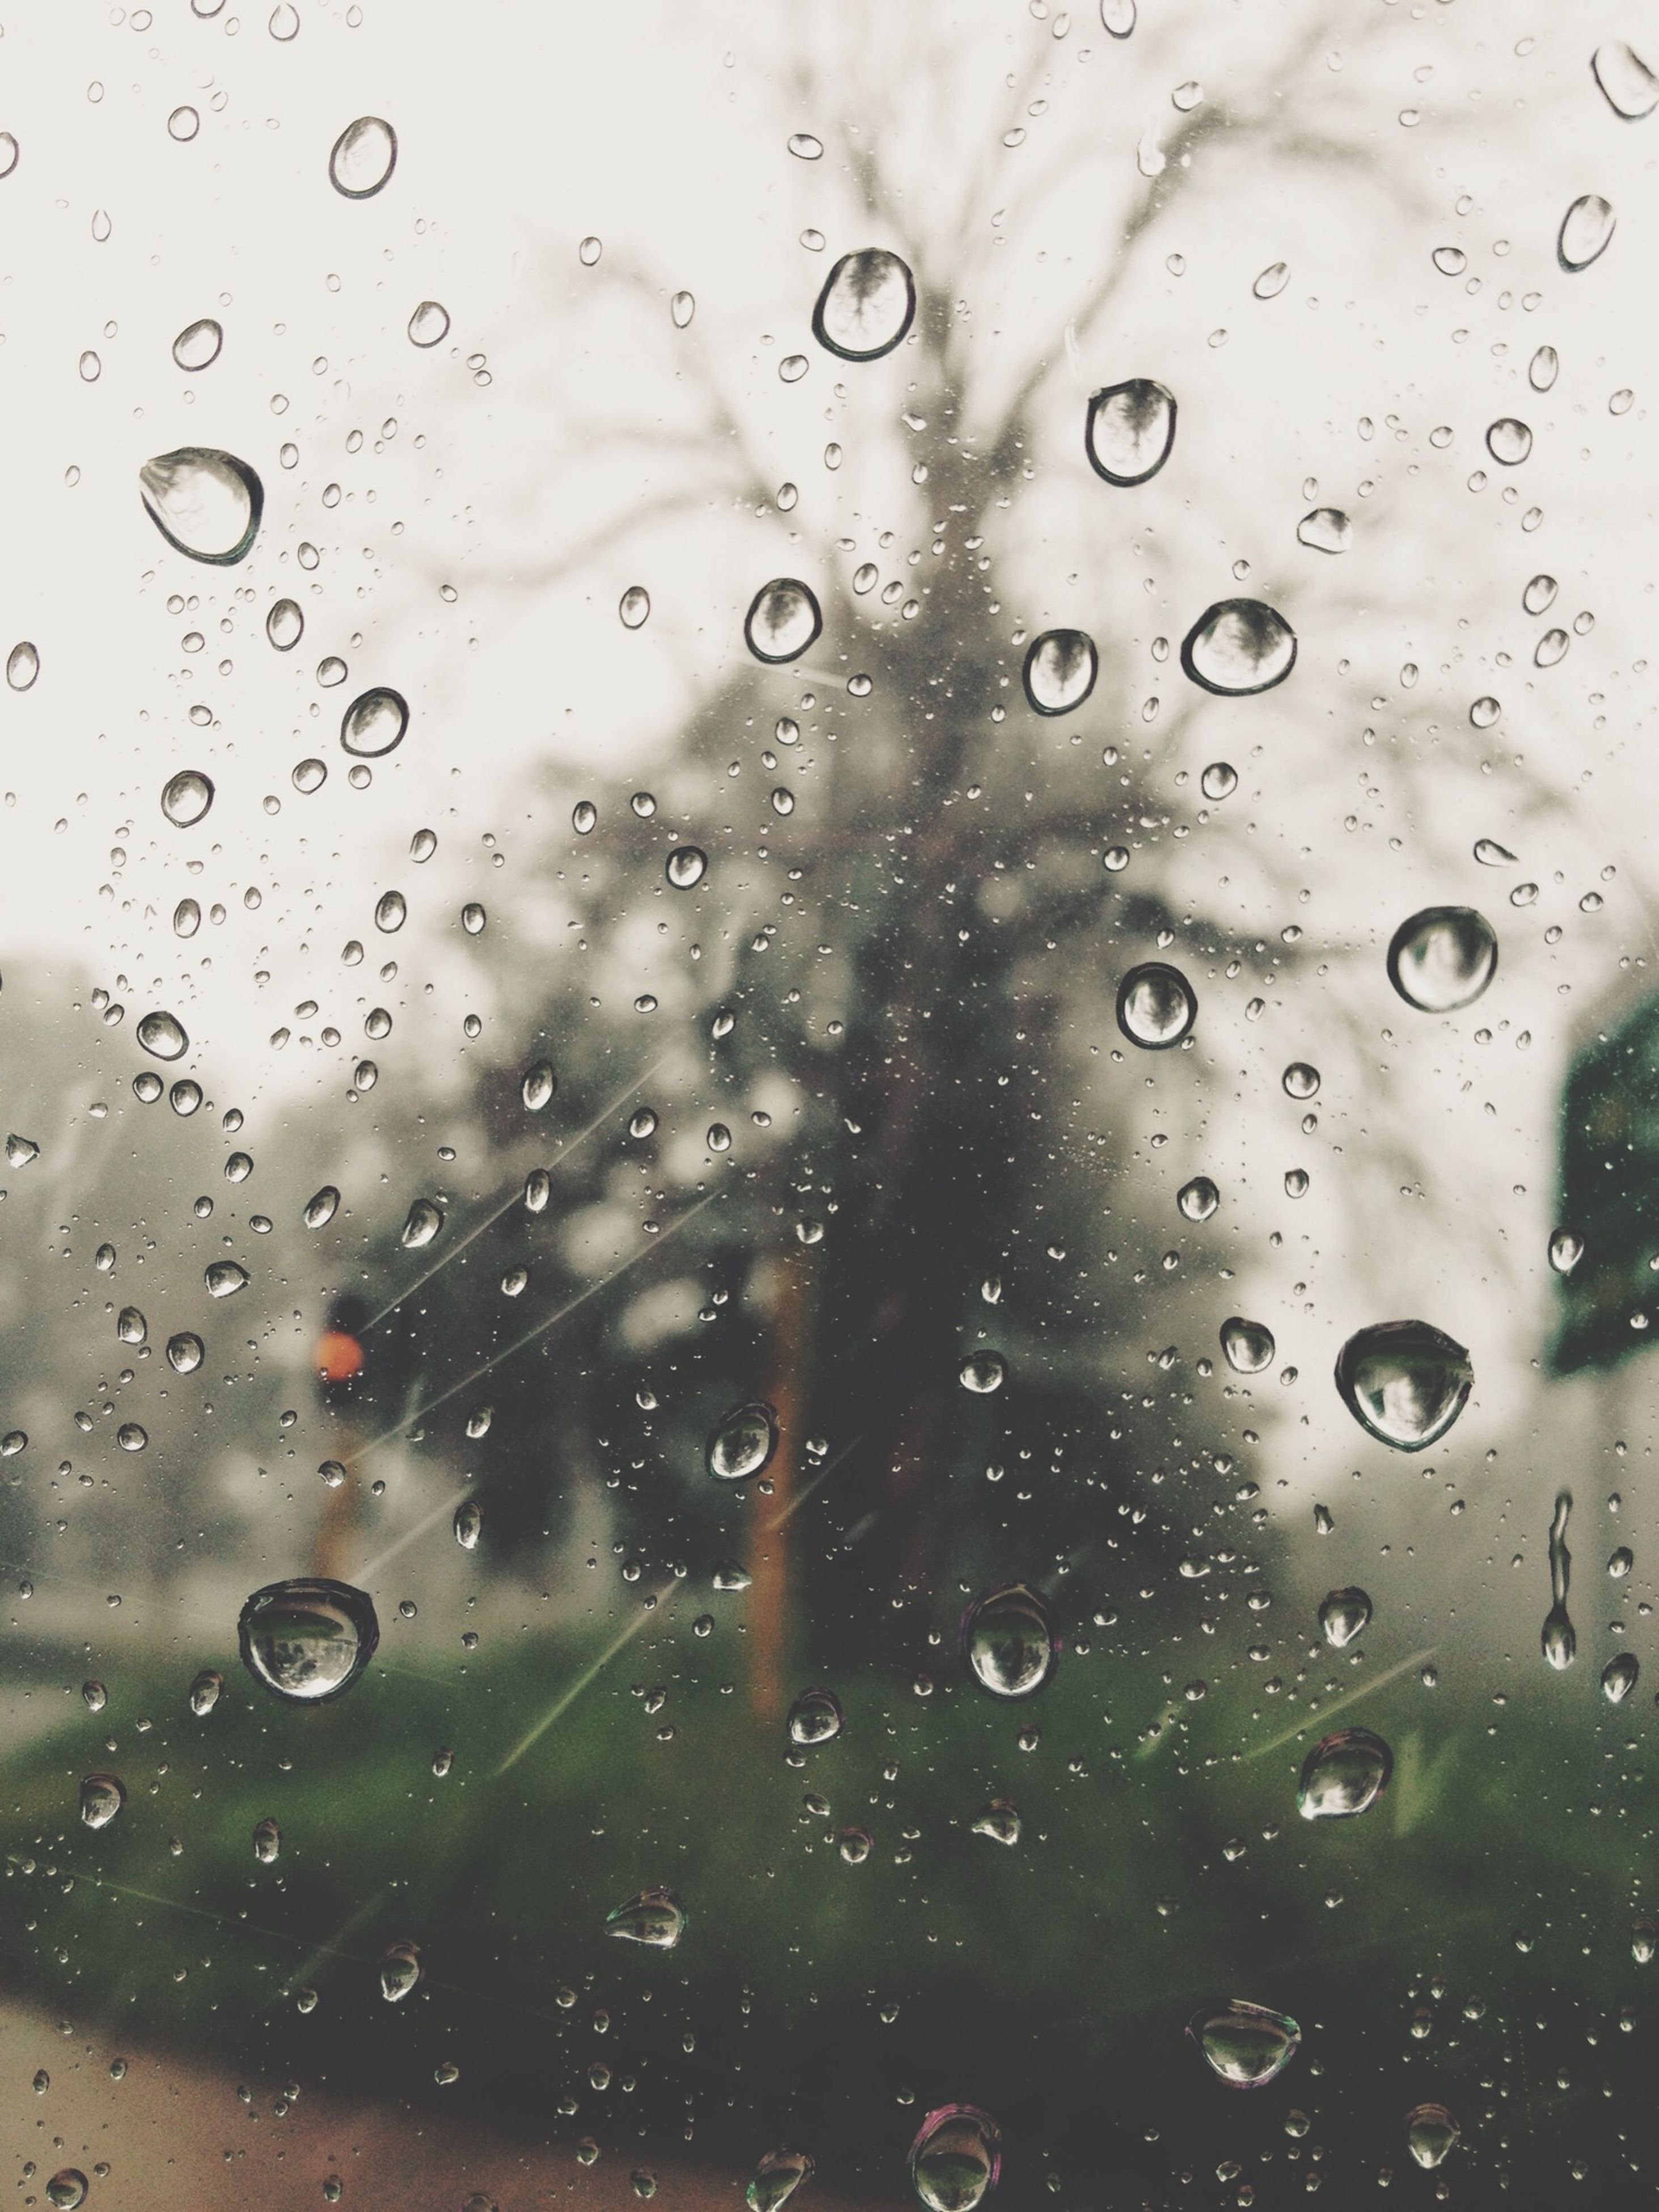 drop, wet, window, water, rain, transparent, glass - material, raindrop, indoors, weather, focus on foreground, season, backgrounds, full frame, water drop, glass, car, close-up, droplet, sky